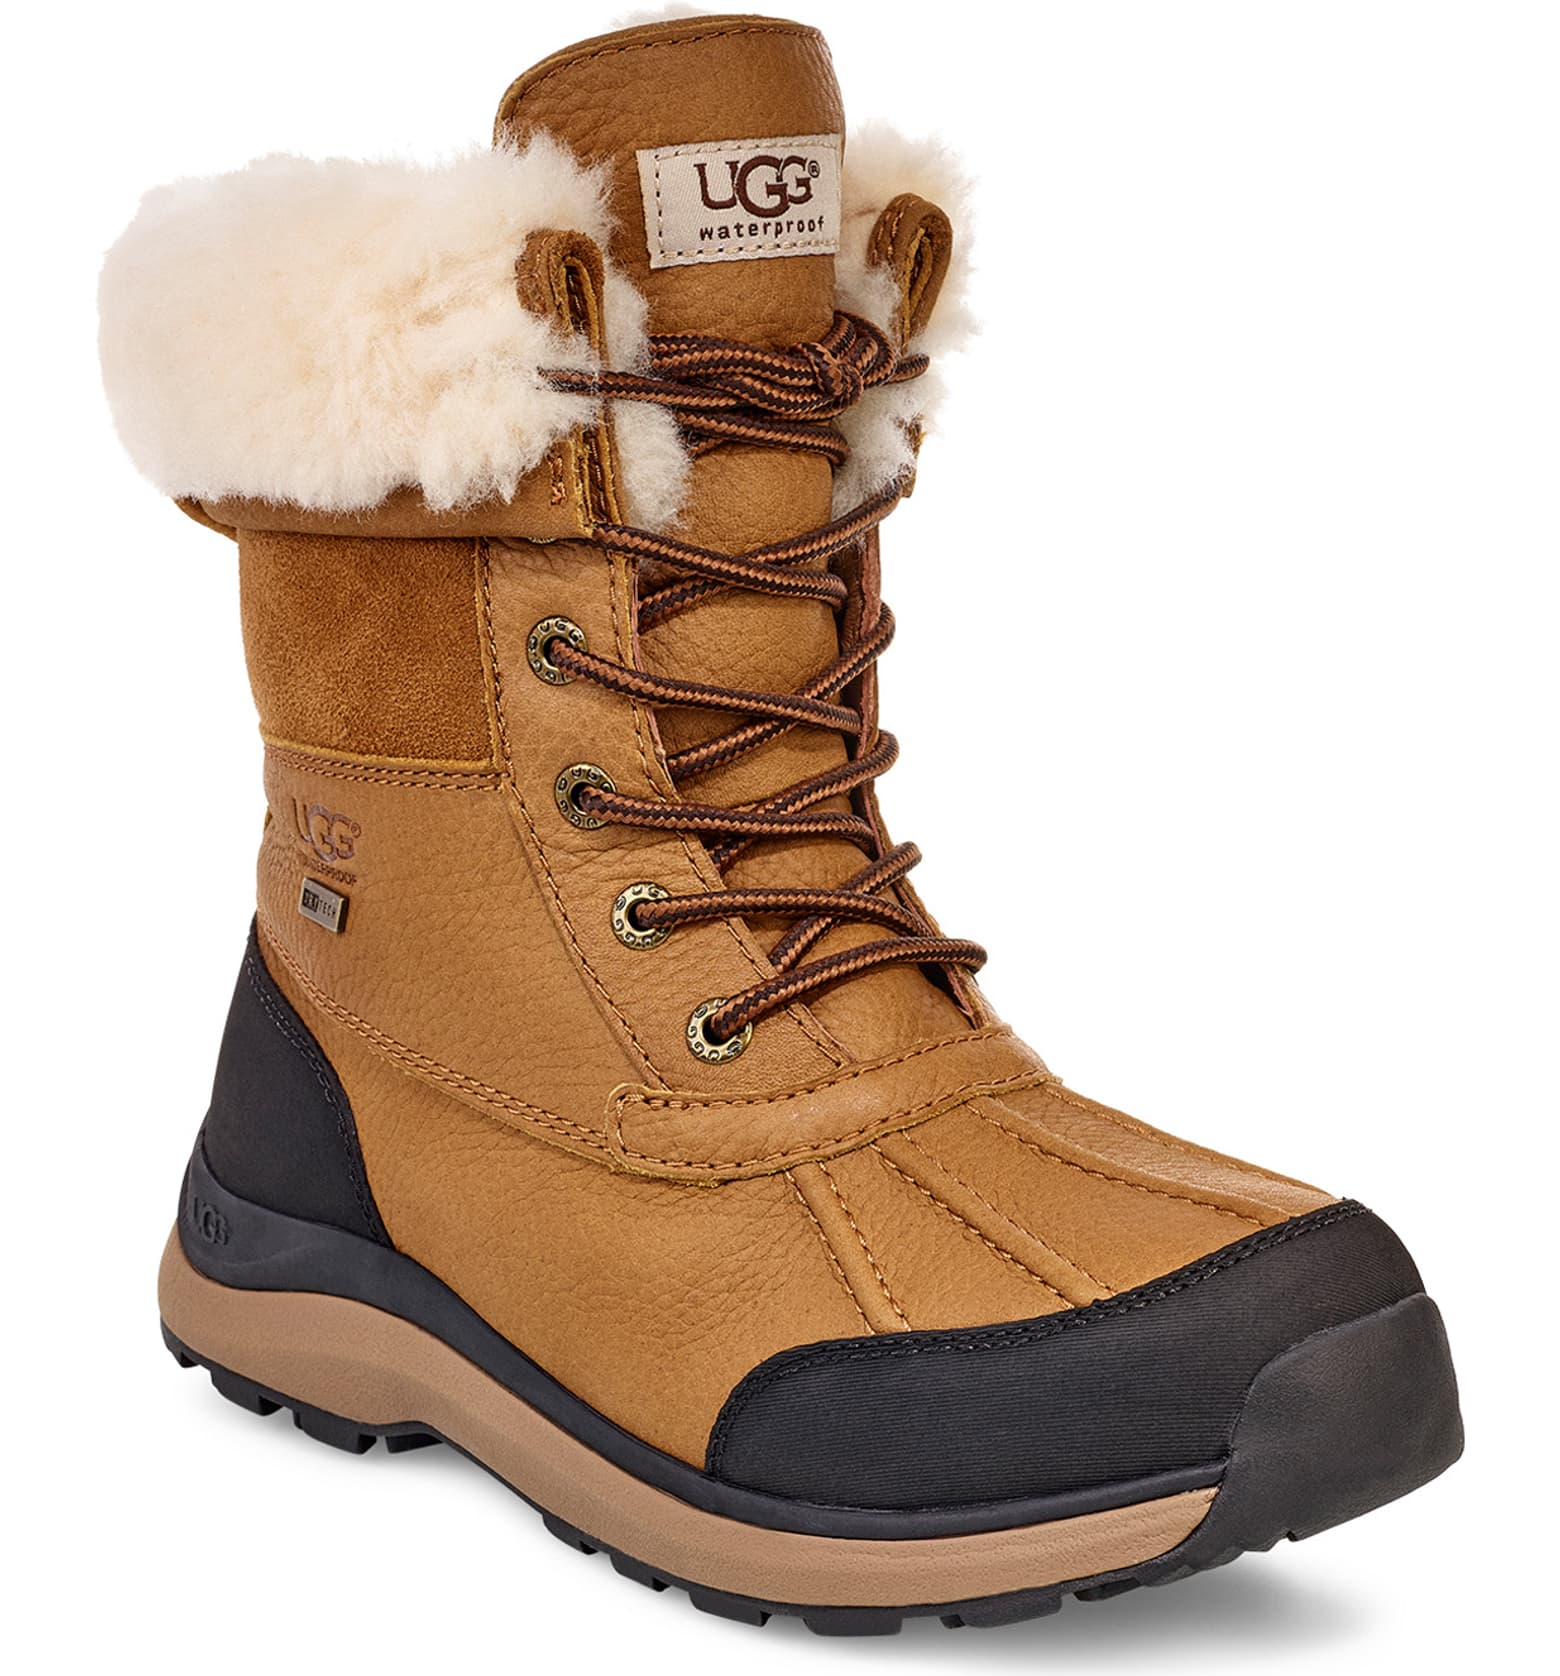 UGG Adirondack III Waterproof Boot | Weekly Finds